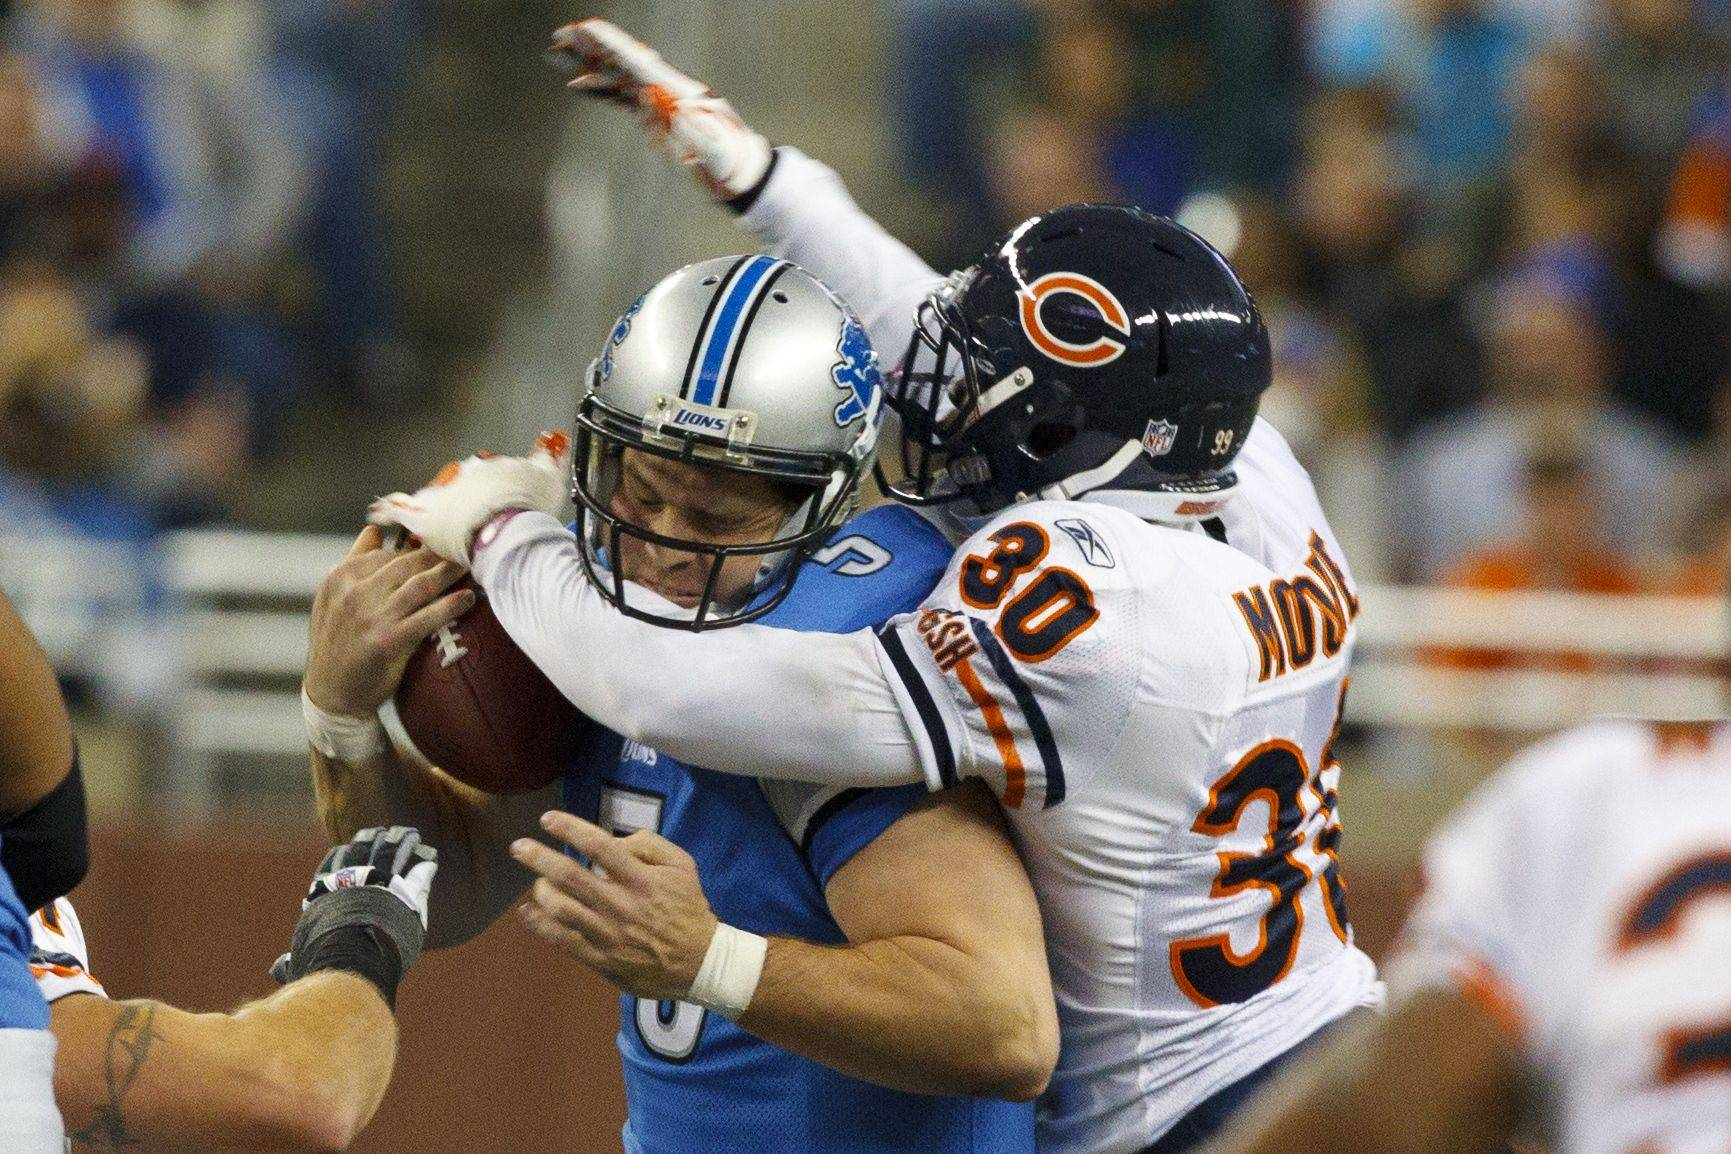 Chicago Bears cornerback D.J. Moore sacks Detroit Lions quarterback Drew Stanton (5) in the second half.